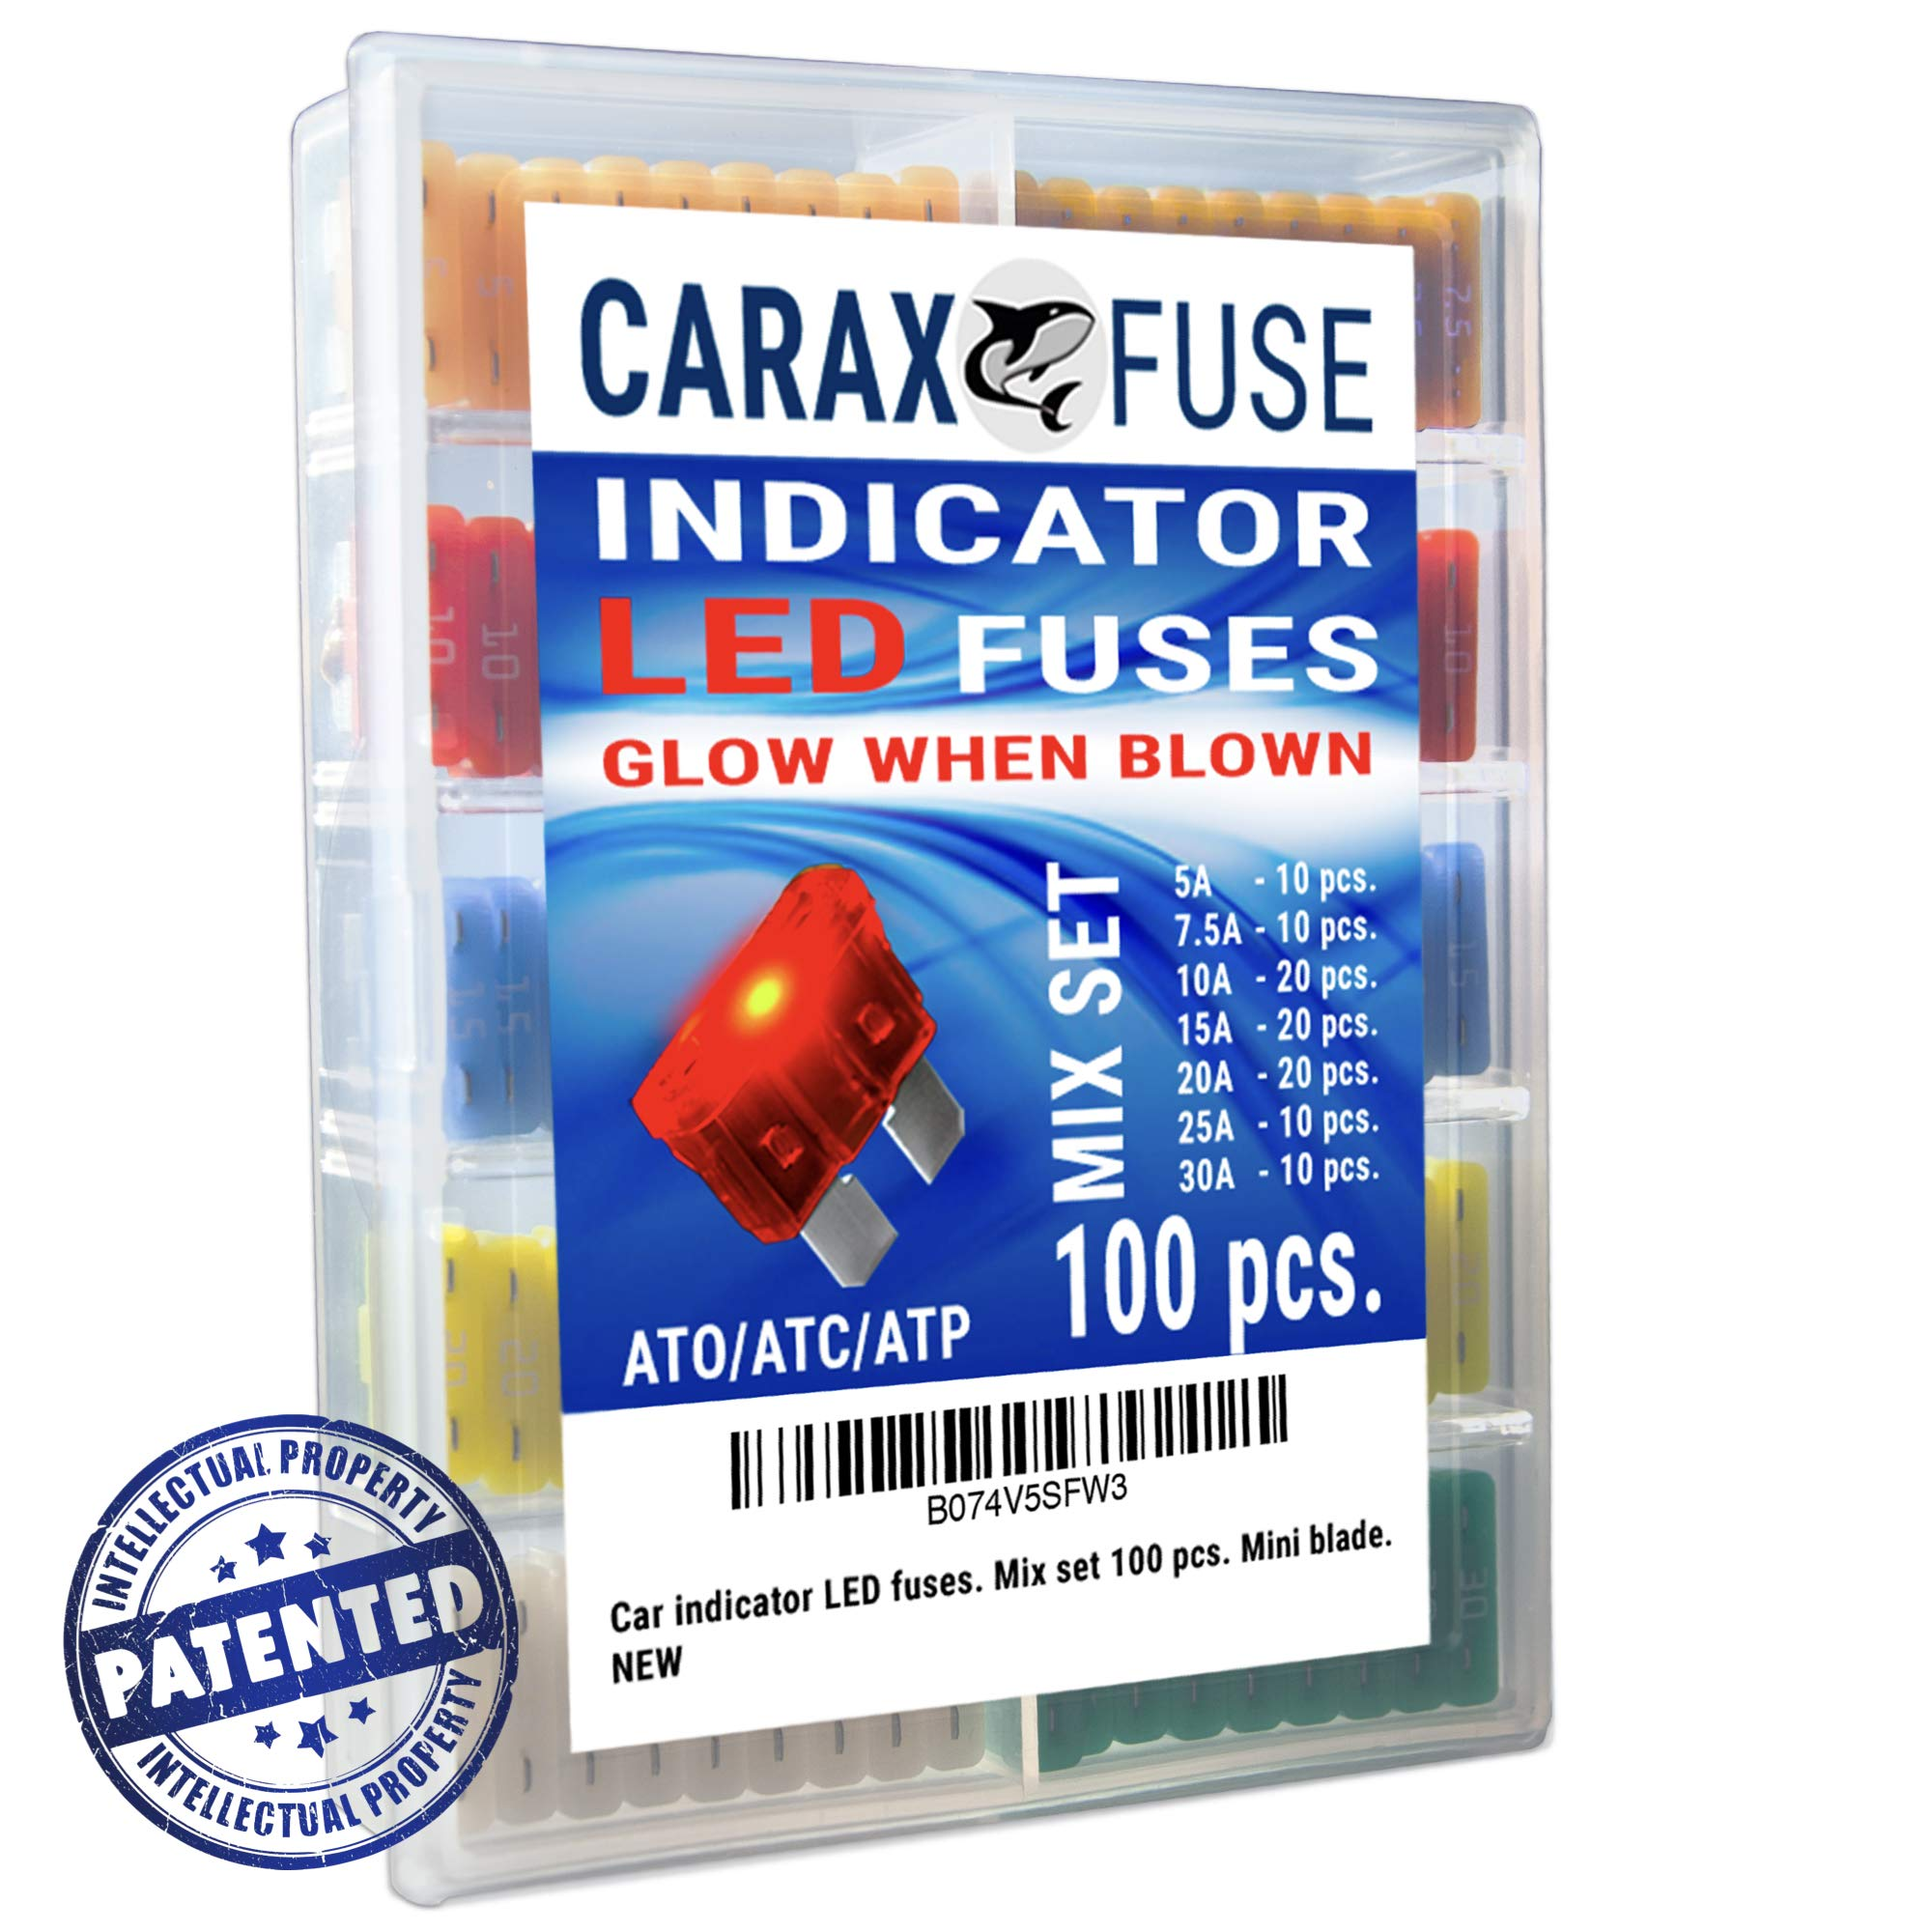 Fuse STANDARD Blade - Smart GLOW Fuse - Car Fuse Kit Automotive ATC/ATO - Fuses Assortment Replacement Kit - Easy Identification - Illuminating Indicator Fuse That Glow When Blown - Carax Fuse 100 pcs